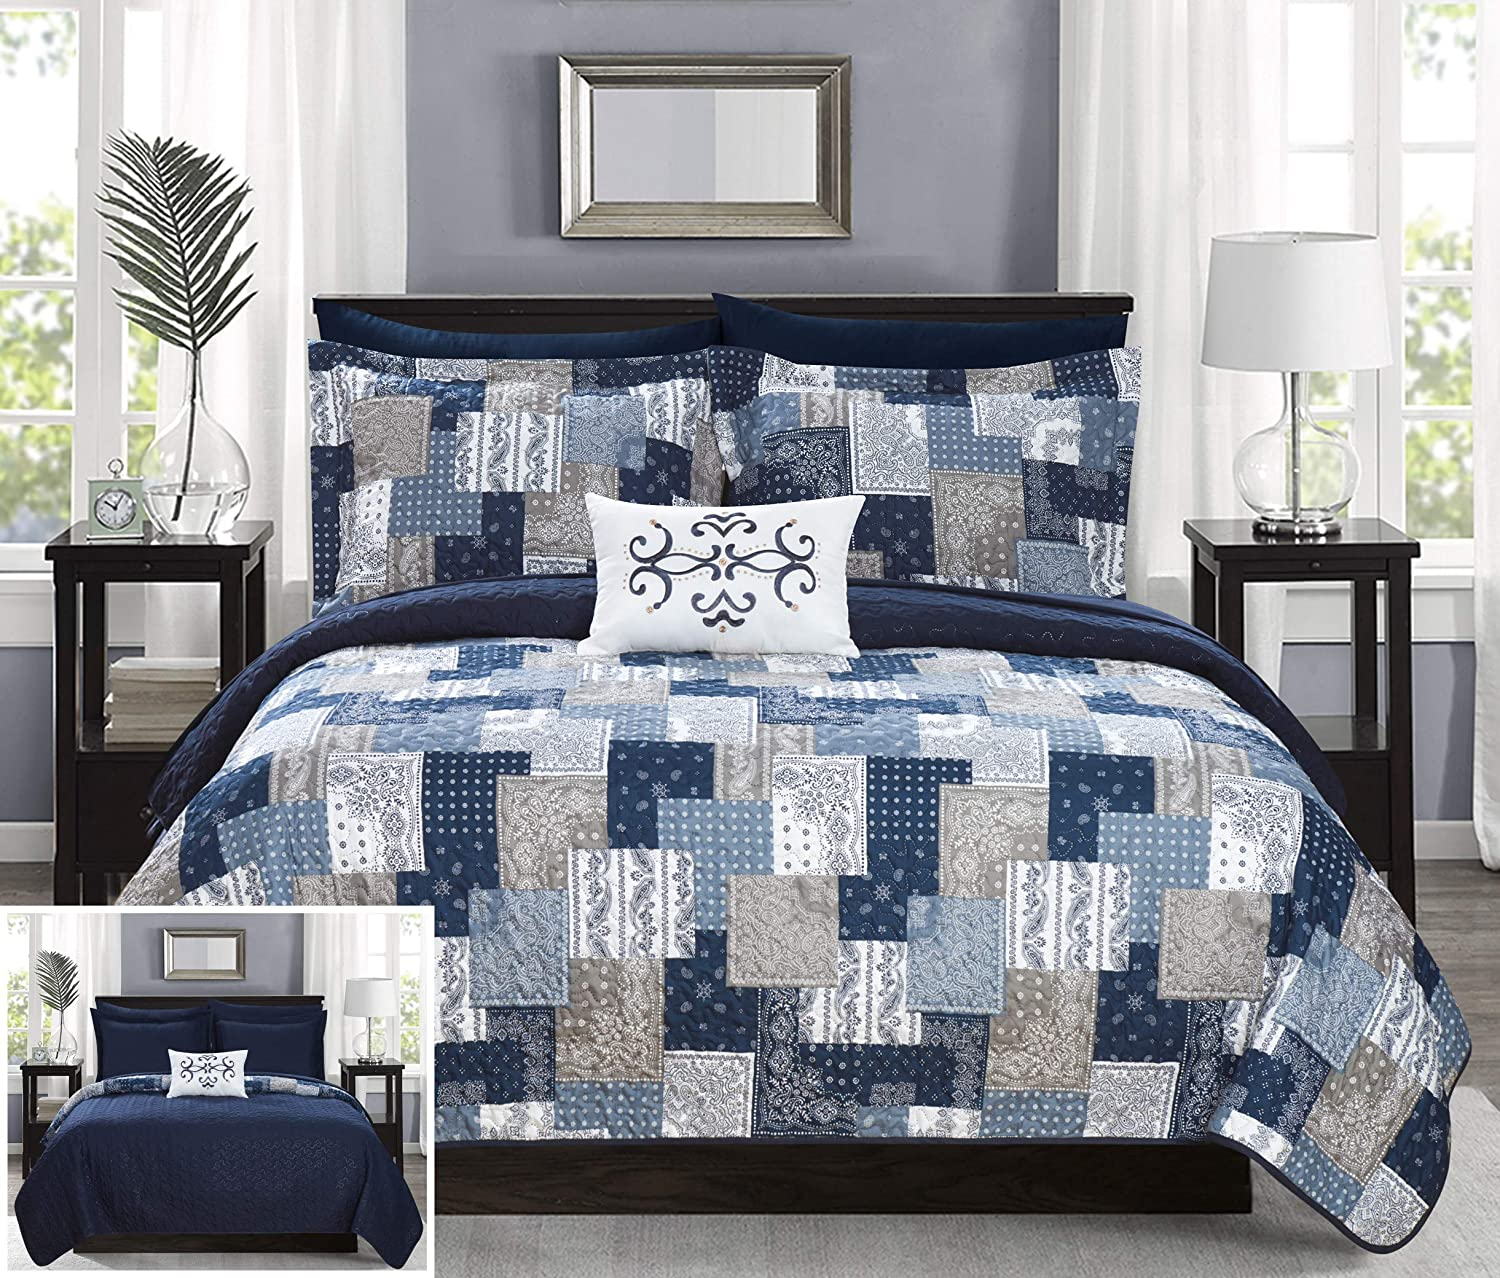 Black King Chic Home Eliana 4 Piece Reversible Coverlet Set Embossed Patchwork Bohemian Paisley Print Quilted Design Bedding-Decorative Pillow Shams Included